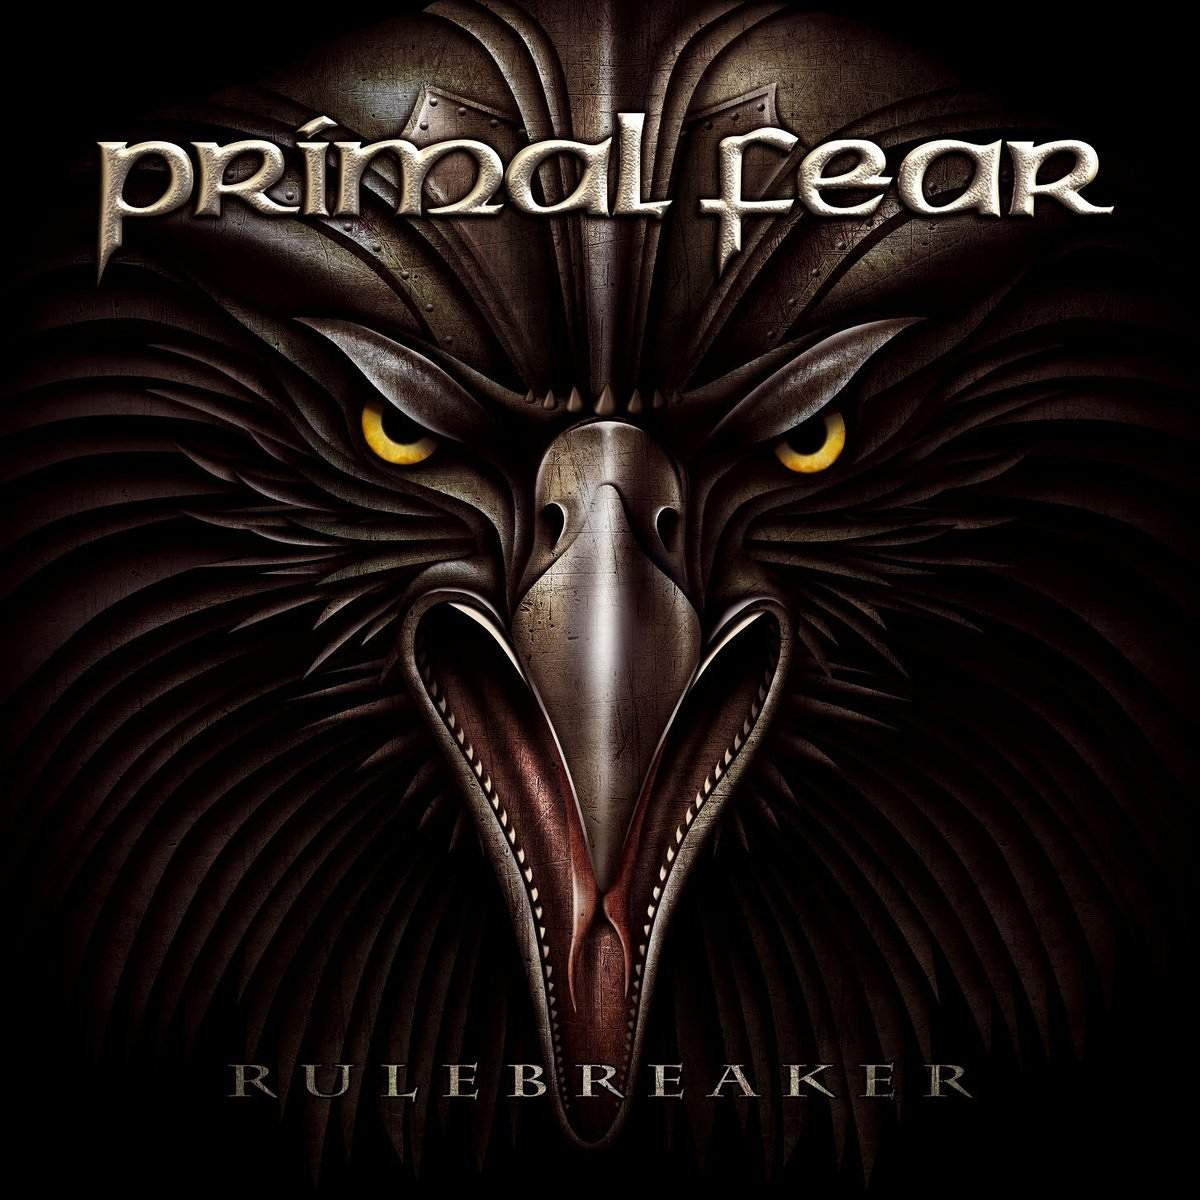 Primal Fear: Rulebreaker (2016) Book Cover